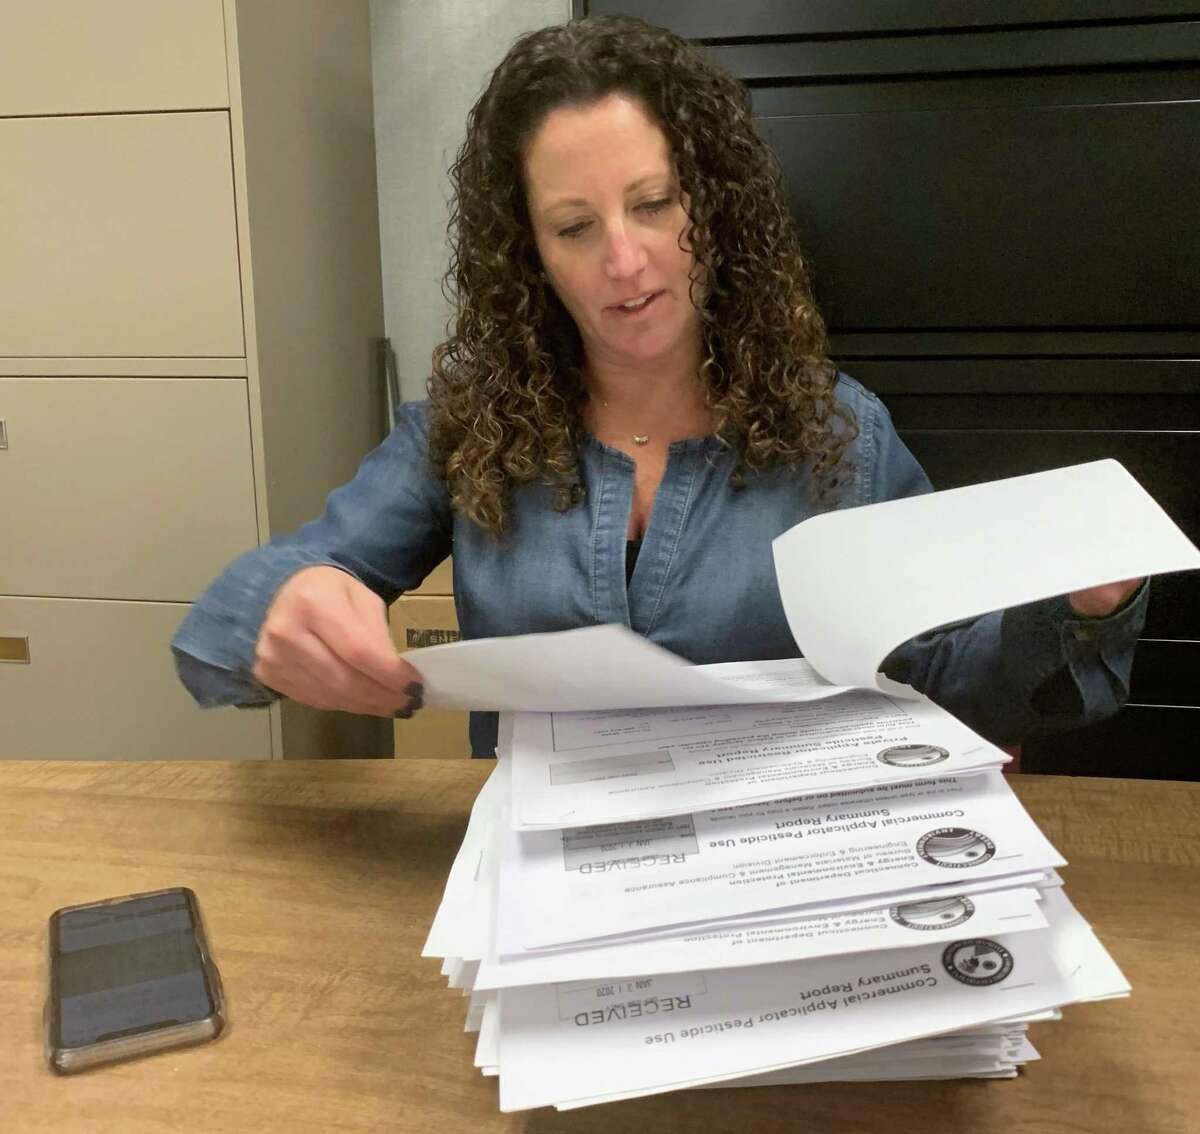 Tara Cook-Littman of Fairfield has researched the golf course and agricultural applications in Connecticut of the controversial pesticide chloropyifos, which is banned in Europe and banned in the United States for most household use. She is shown with files at the offices of DEEP, the state Department of Energy and Environmental Protection.